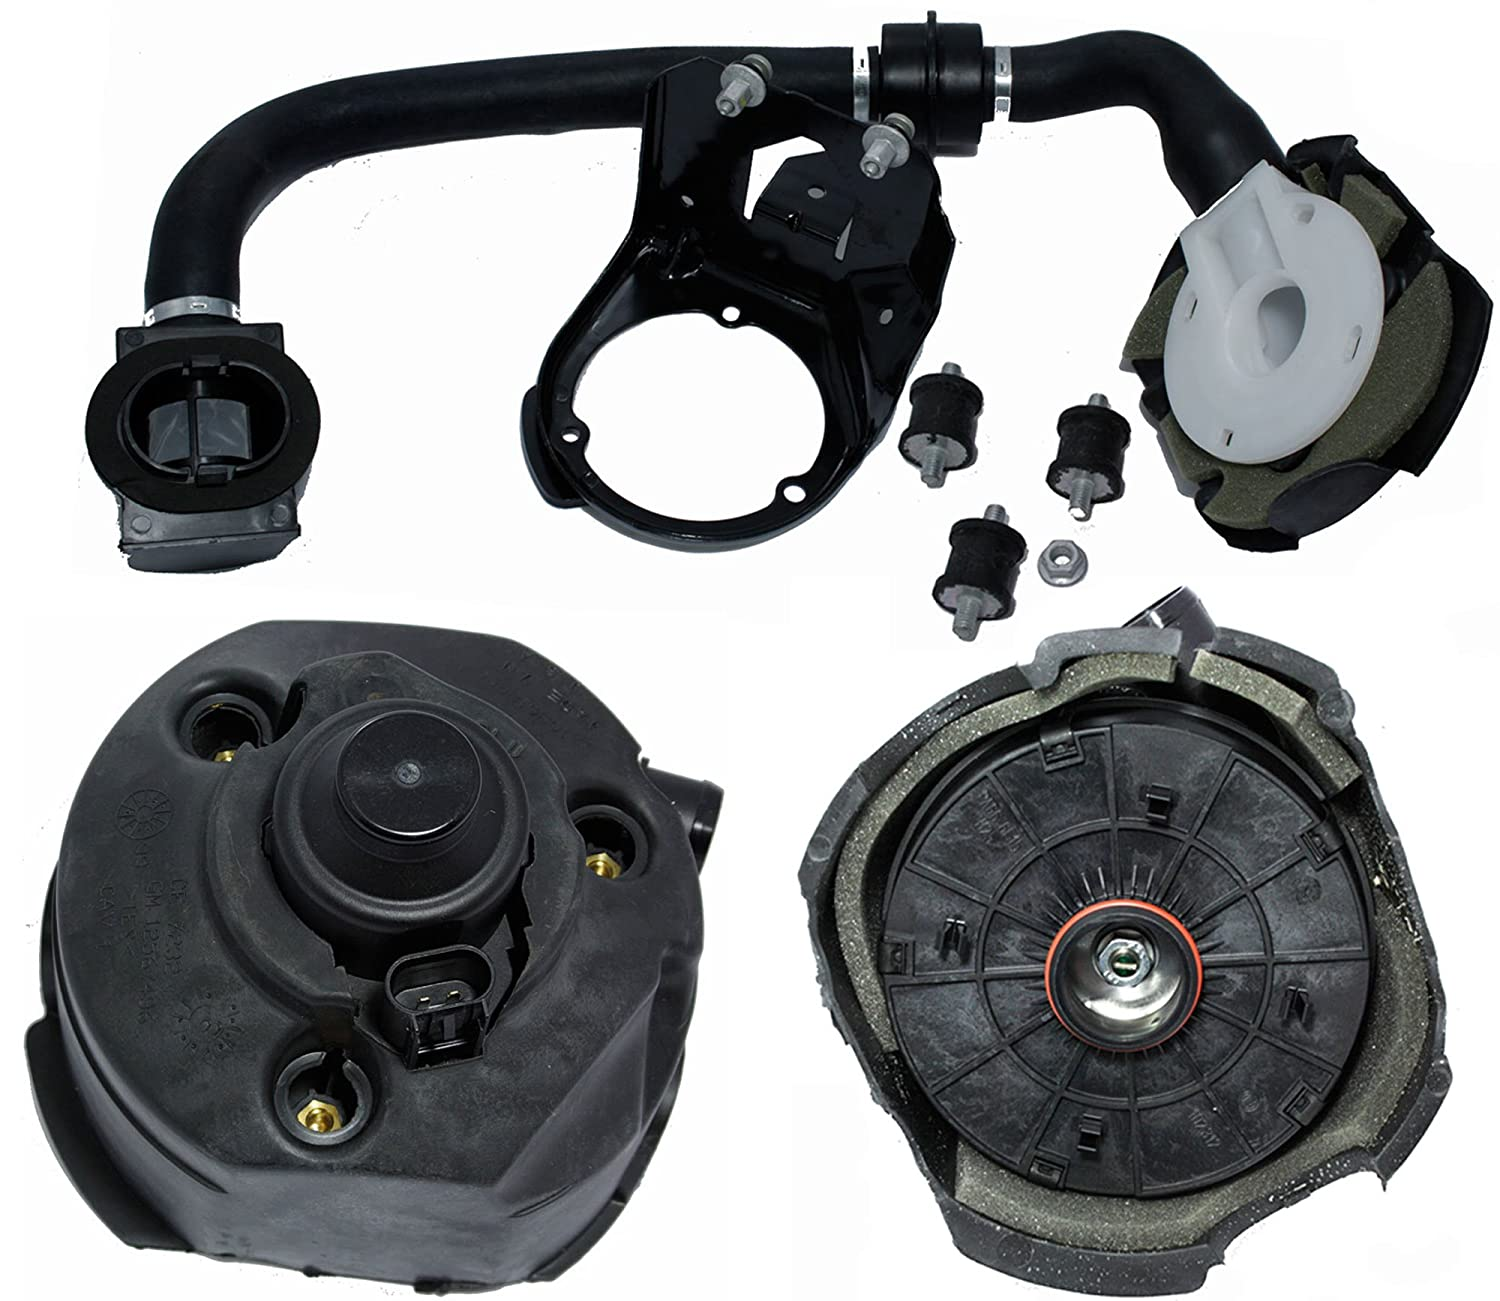 Amazon apdty 19515548 secondary air injection smog emissions amazon apdty 19515548 secondary air injection smog emissions pump upgrade kit for 00 05 cadillac deville 01 02 eldorado 00 03 seville 00 02 oldsmobile sciox Image collections